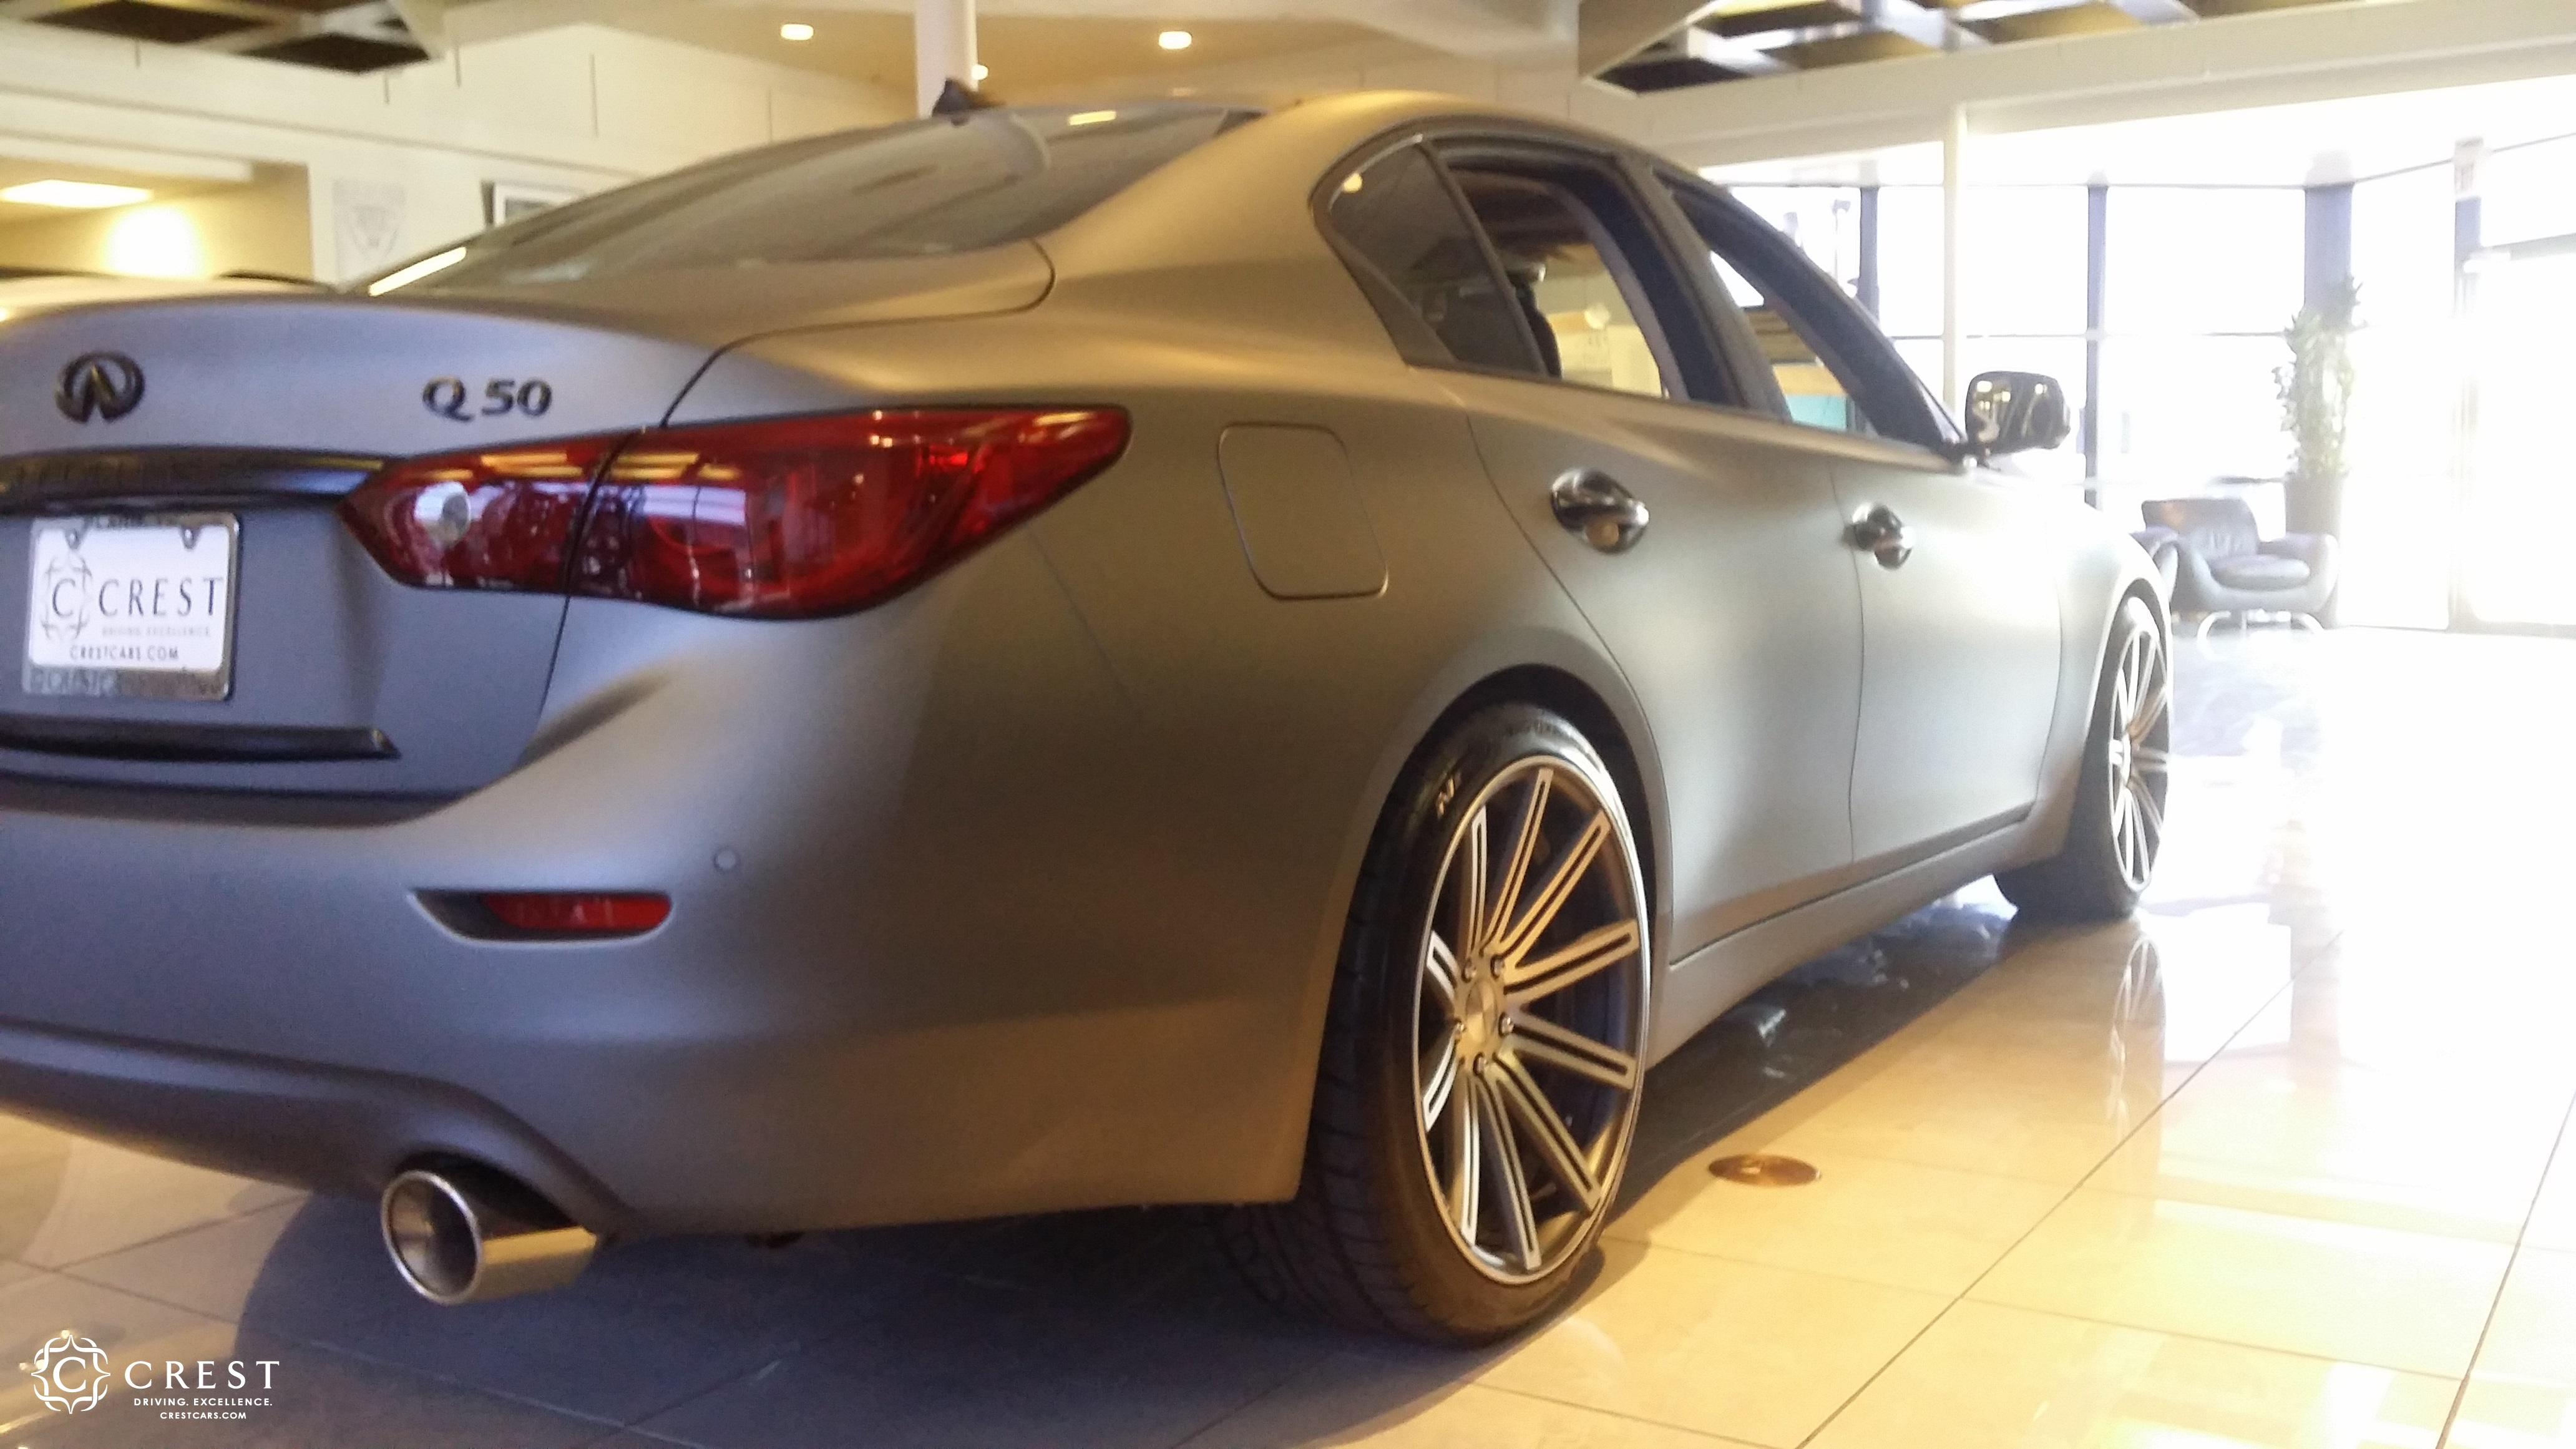 Crest Infiniti Q50 with STILLEN aftermarket parts